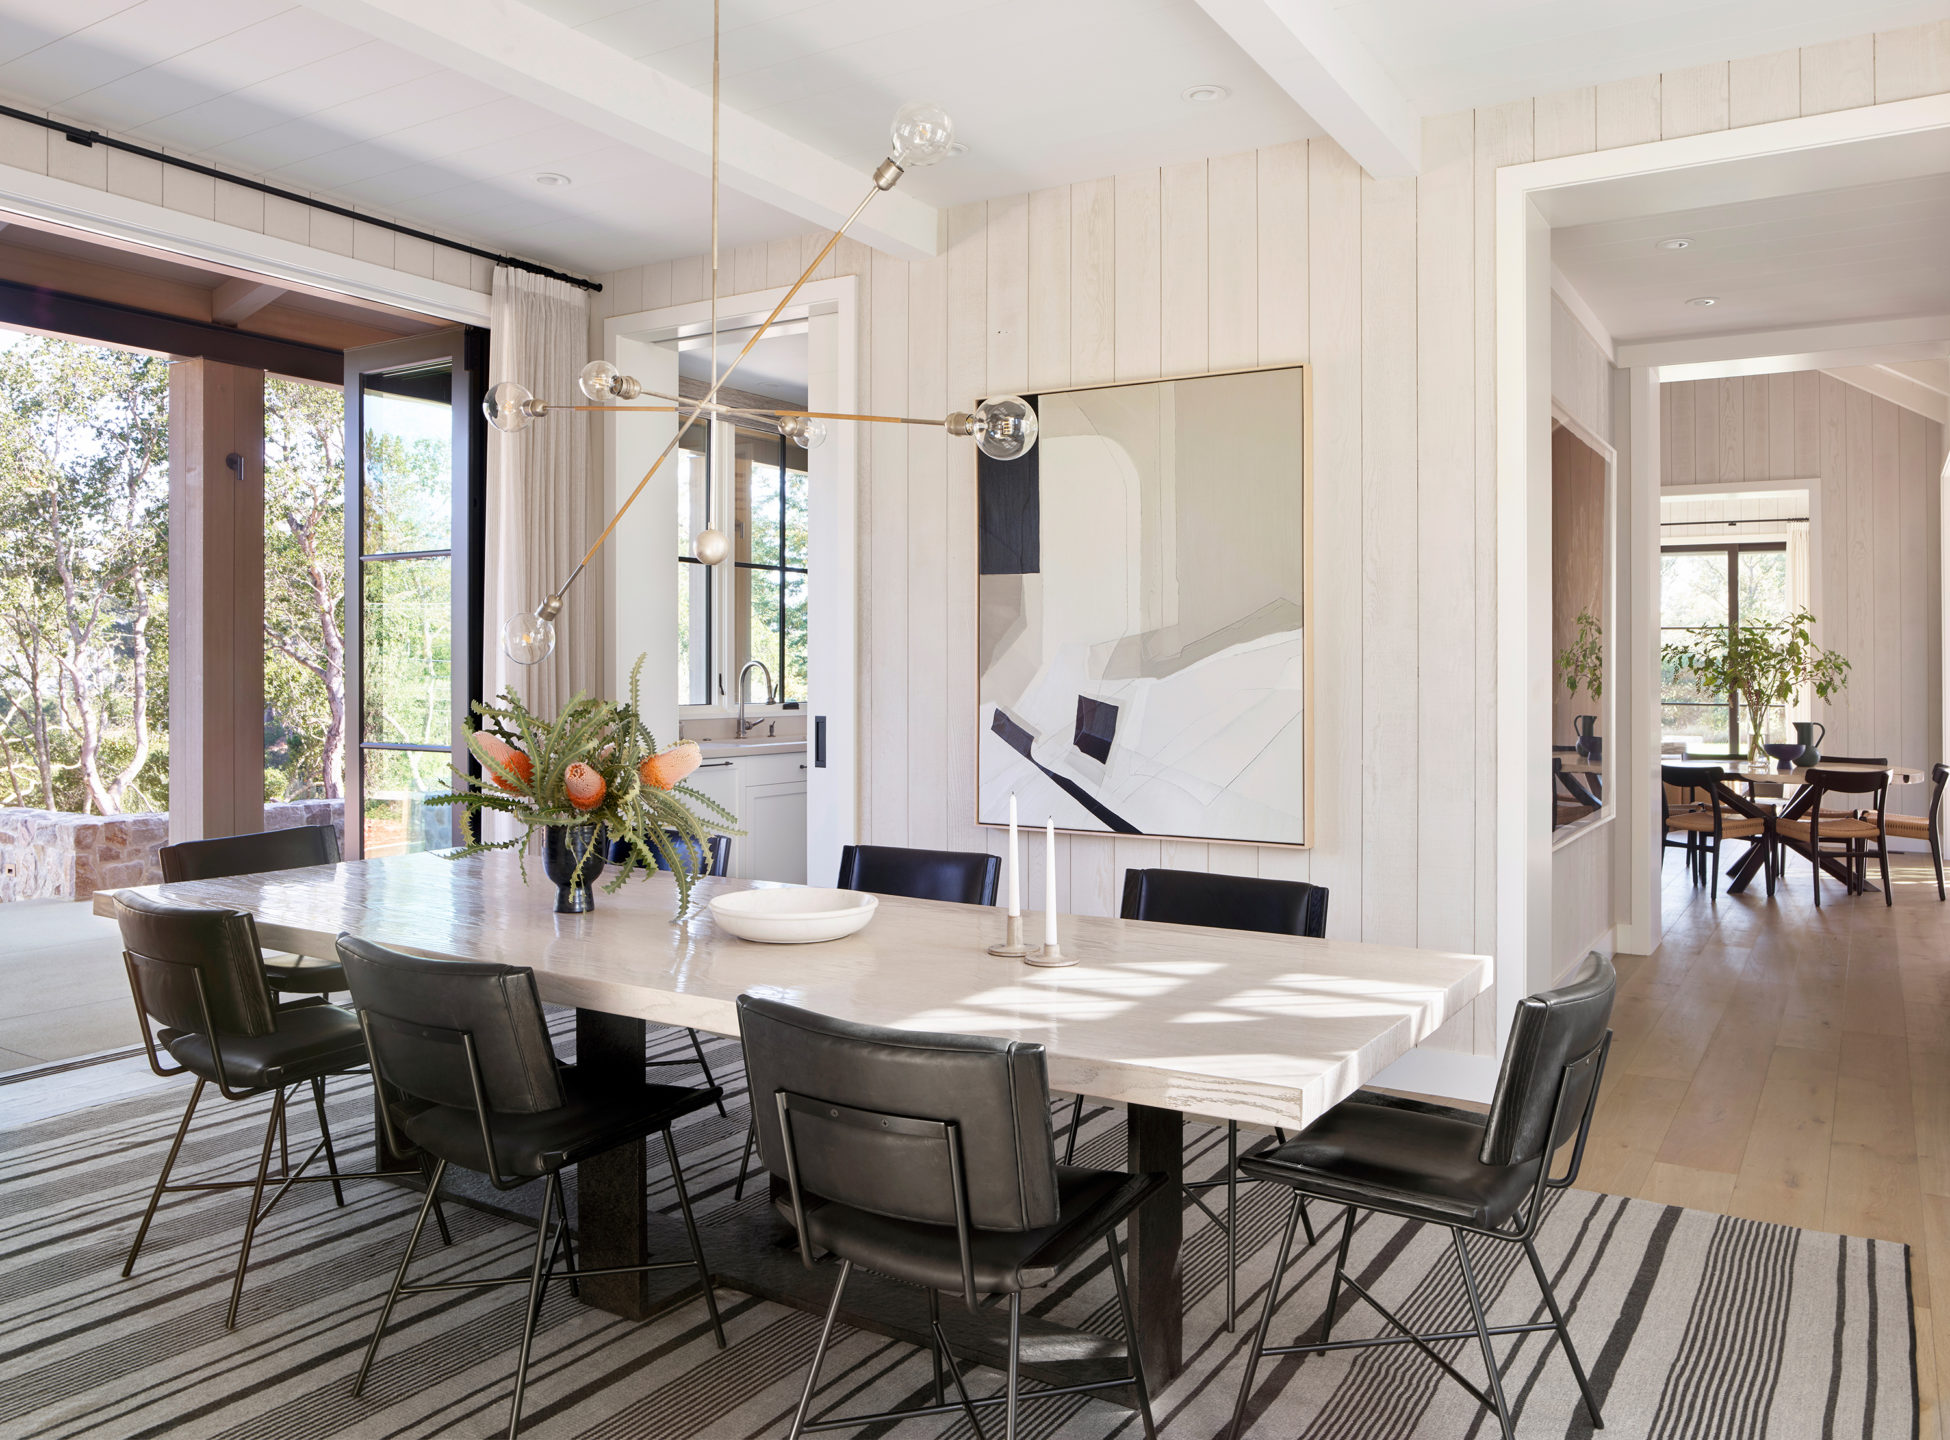 Jennifer_robins_interiors_projects_pacific_heights_portola_valley_dining_room_DR_5Portola_01_HR